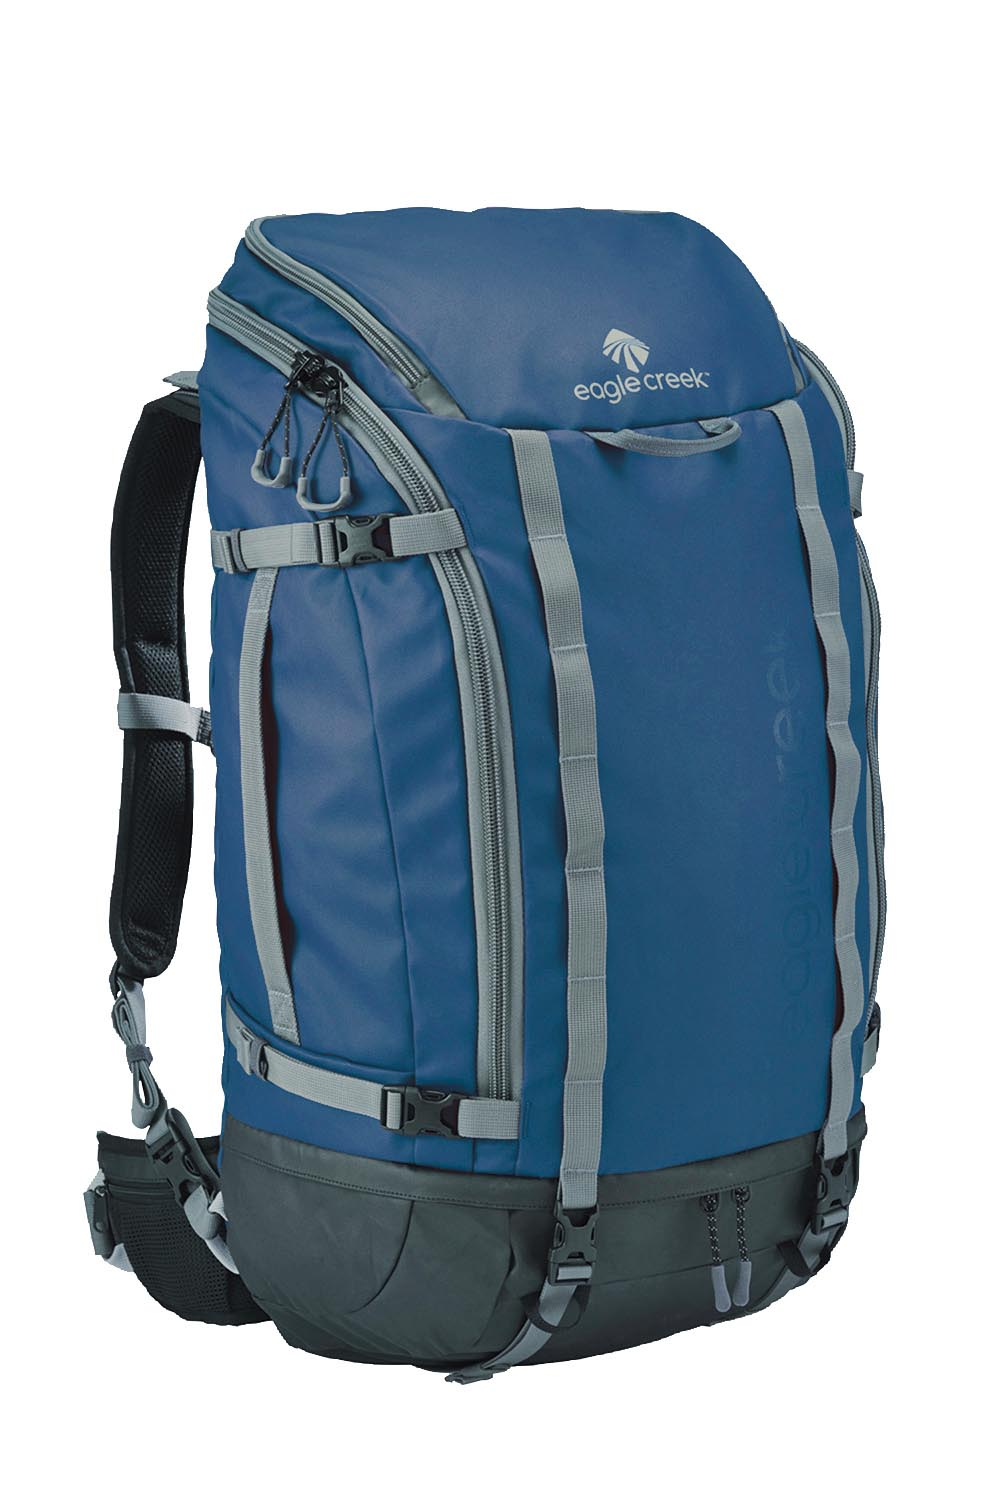 EagleCreek - Systems Go Duffel Pack 60L Slate Blue - Duffels -